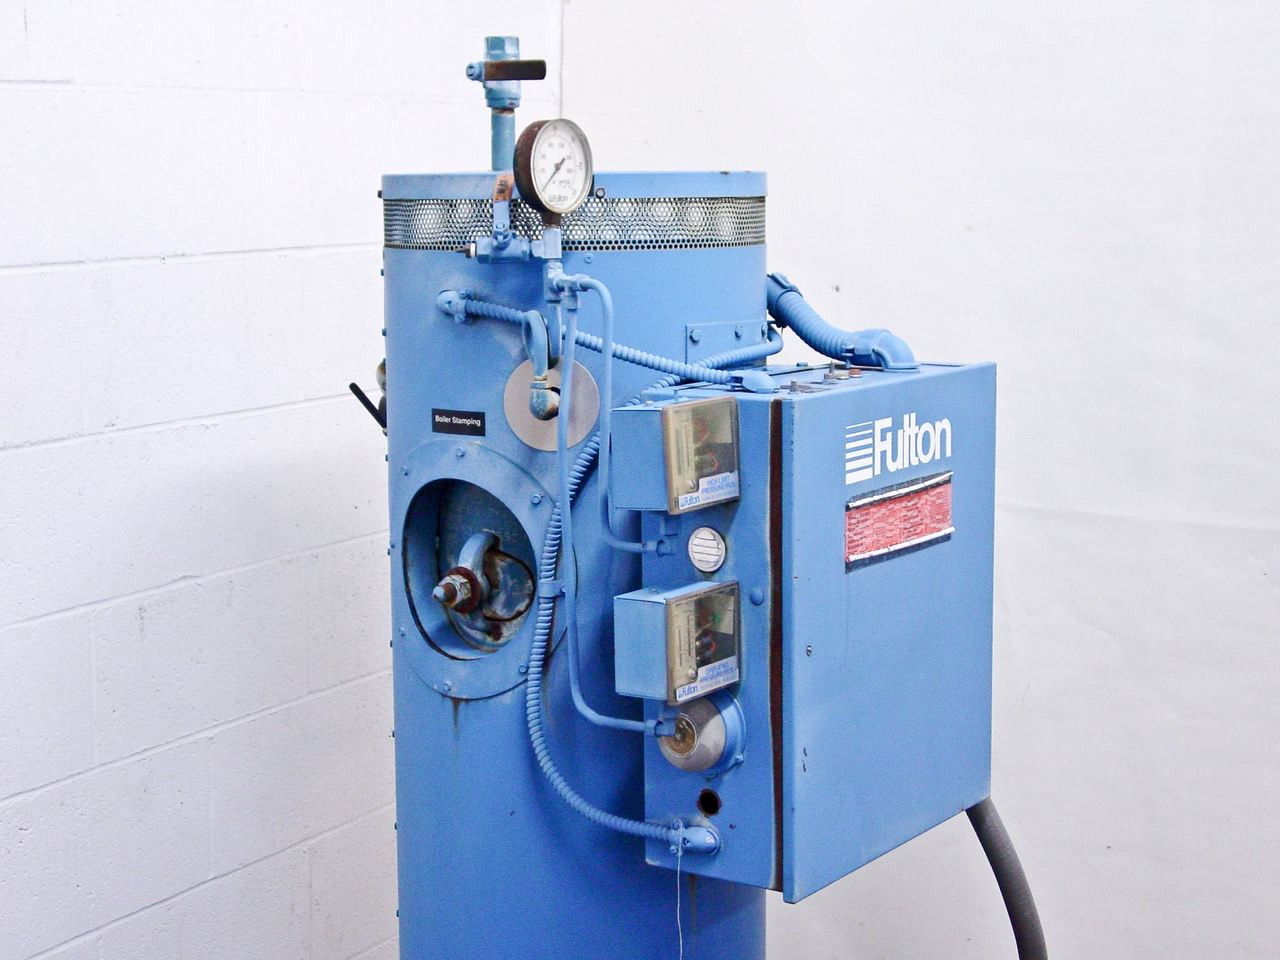 Fulton FB-050-L 50kW Electric Steam Boiler 480 Volt 3 Phase ...